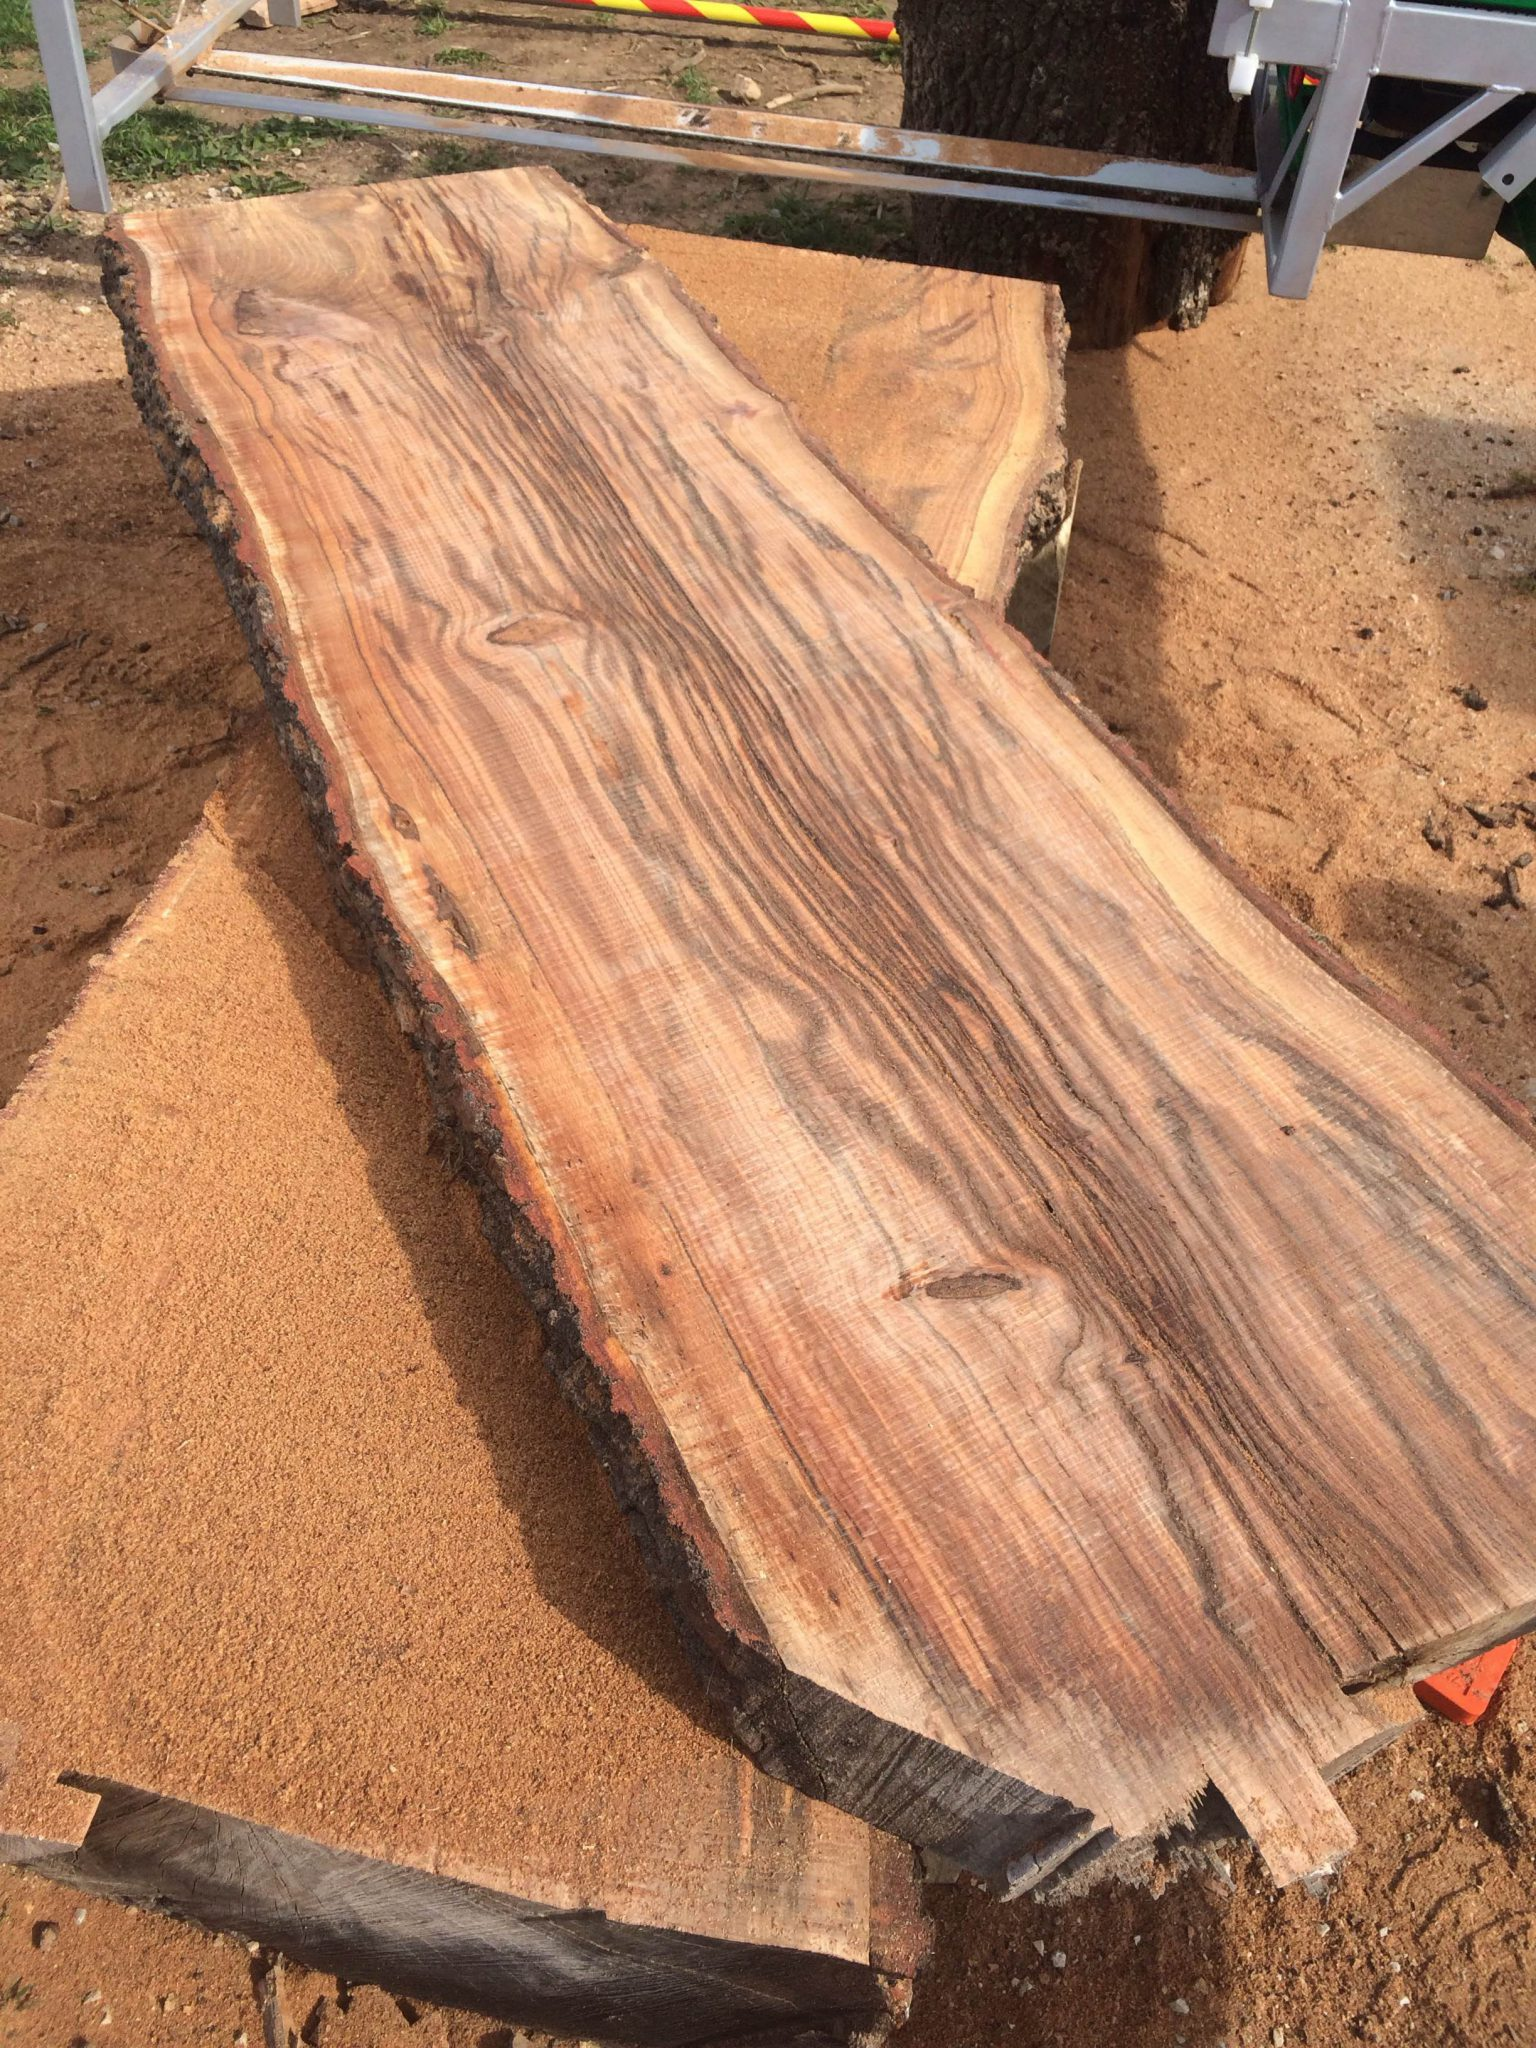 Large wood countertop fresh off the sawmill